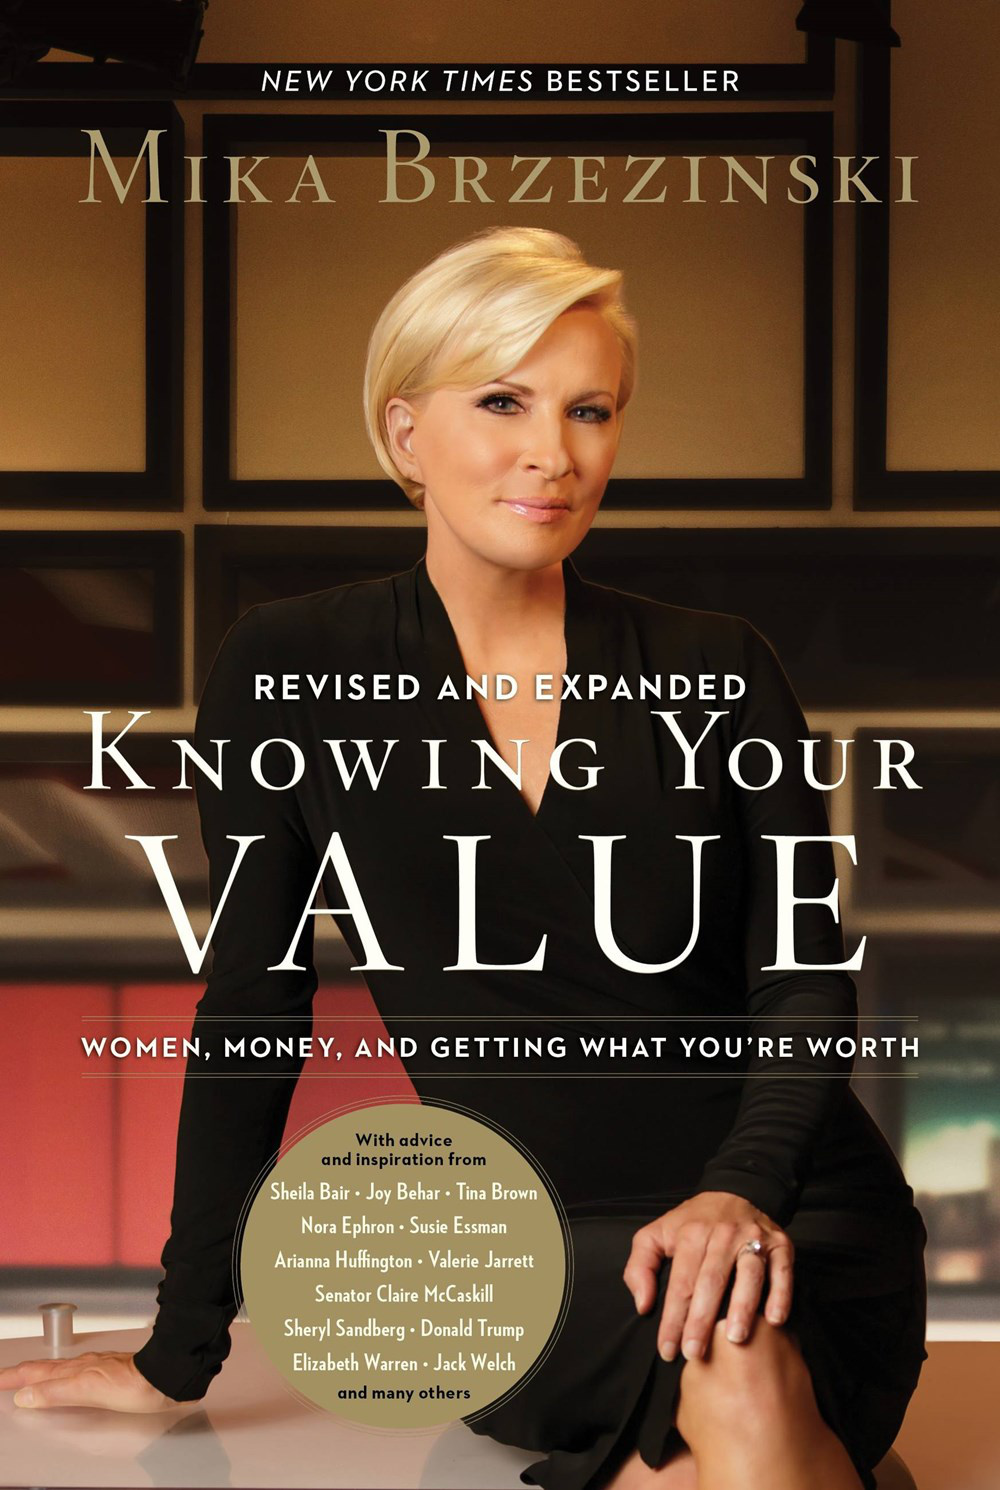 Books · Mika Brzezinski · Knowing Your Value: Women, Money and Getting What  You're Worth · Download Image